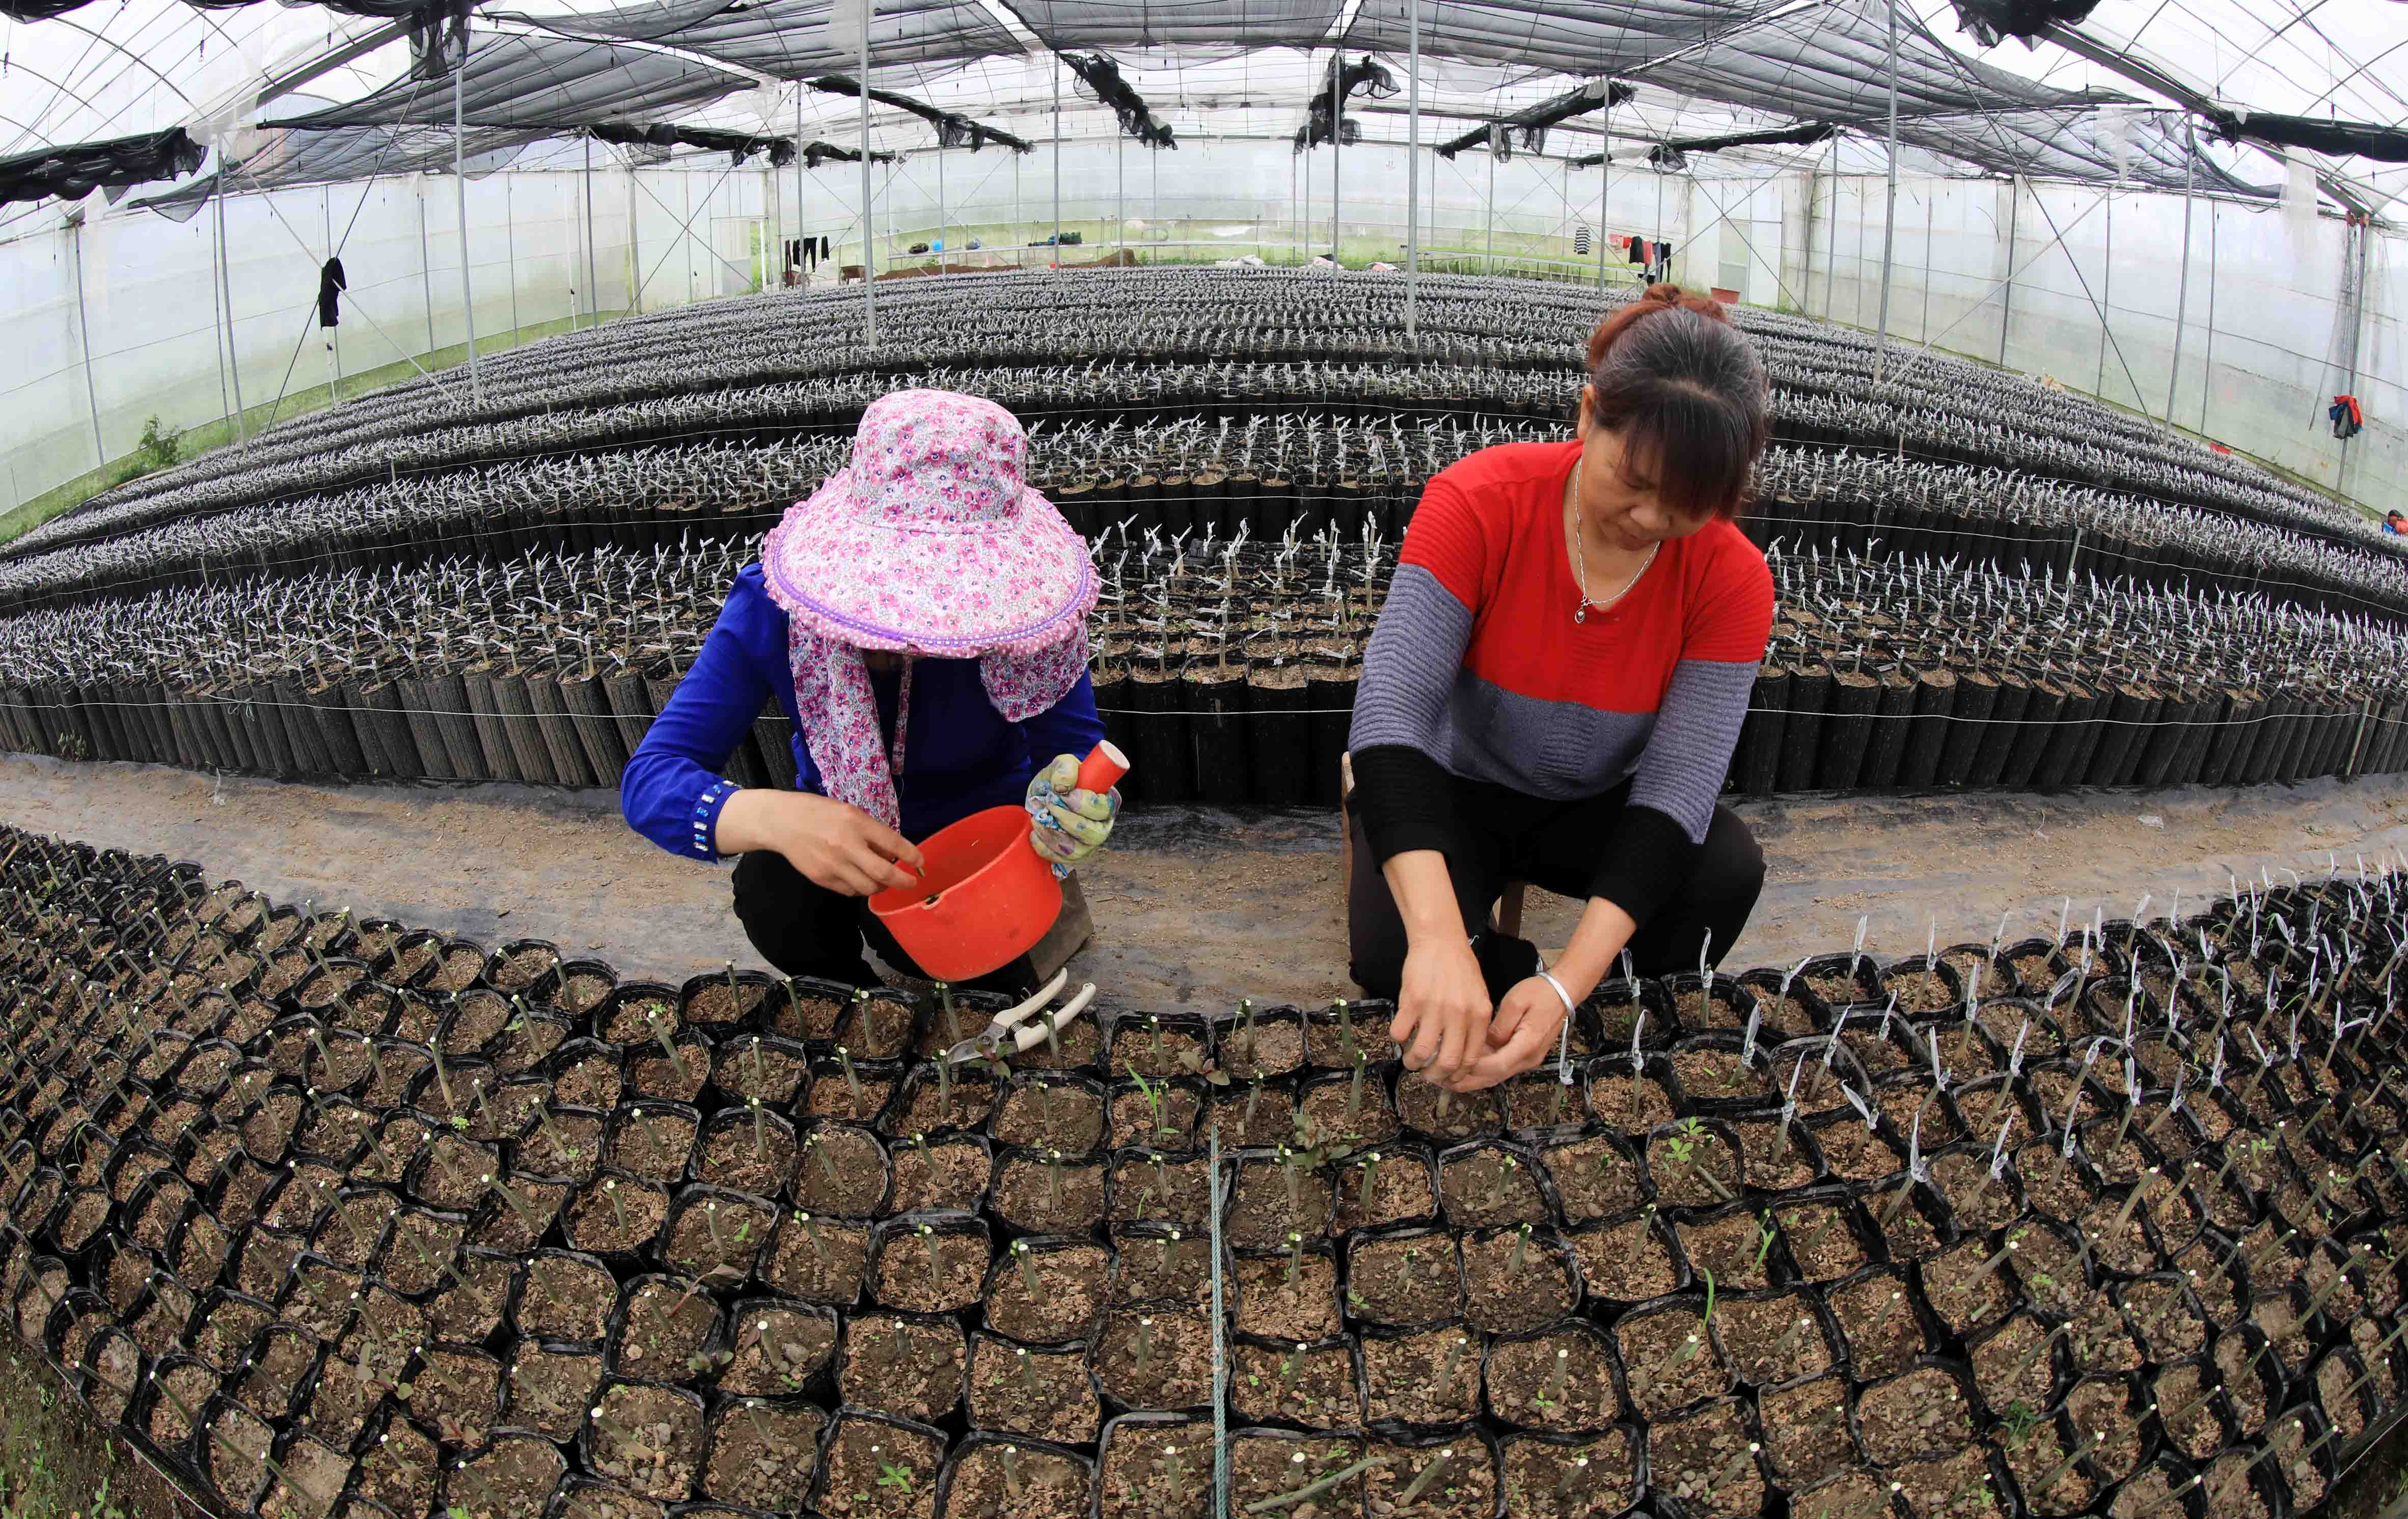 Village in S China shakes off poverty and gains better living conditions - Xinhua   English.news.cn